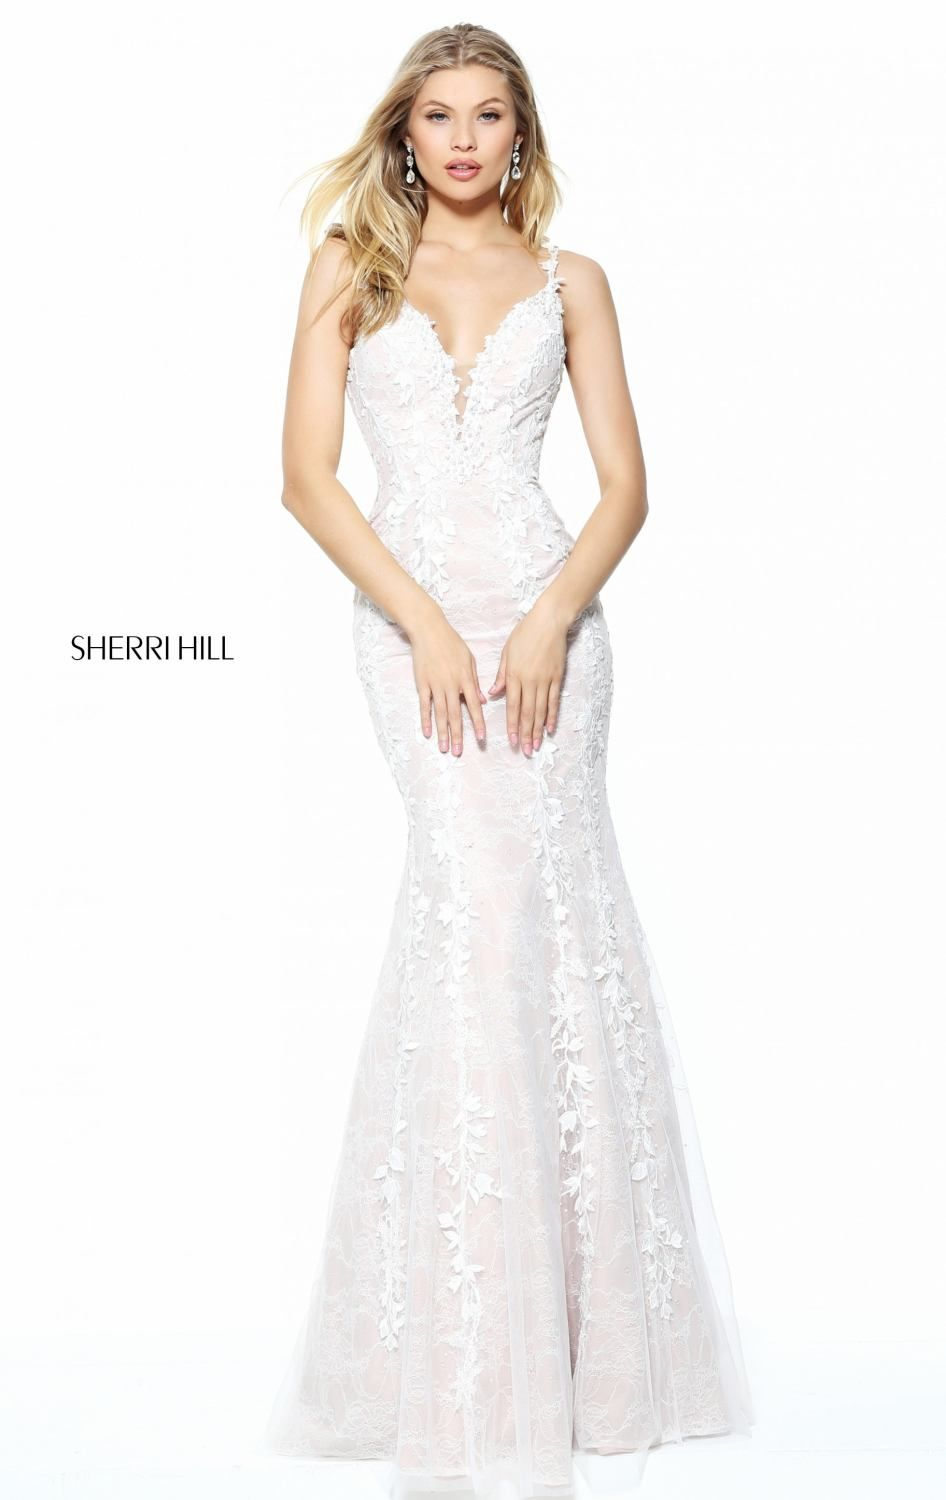 Let all eyes be on you in Sherri Hill 50938. V-neckline with sheer inset at center front flatters your best asset. Lace appliques festooned the entire outfit from the top cascading down the full length hemline.